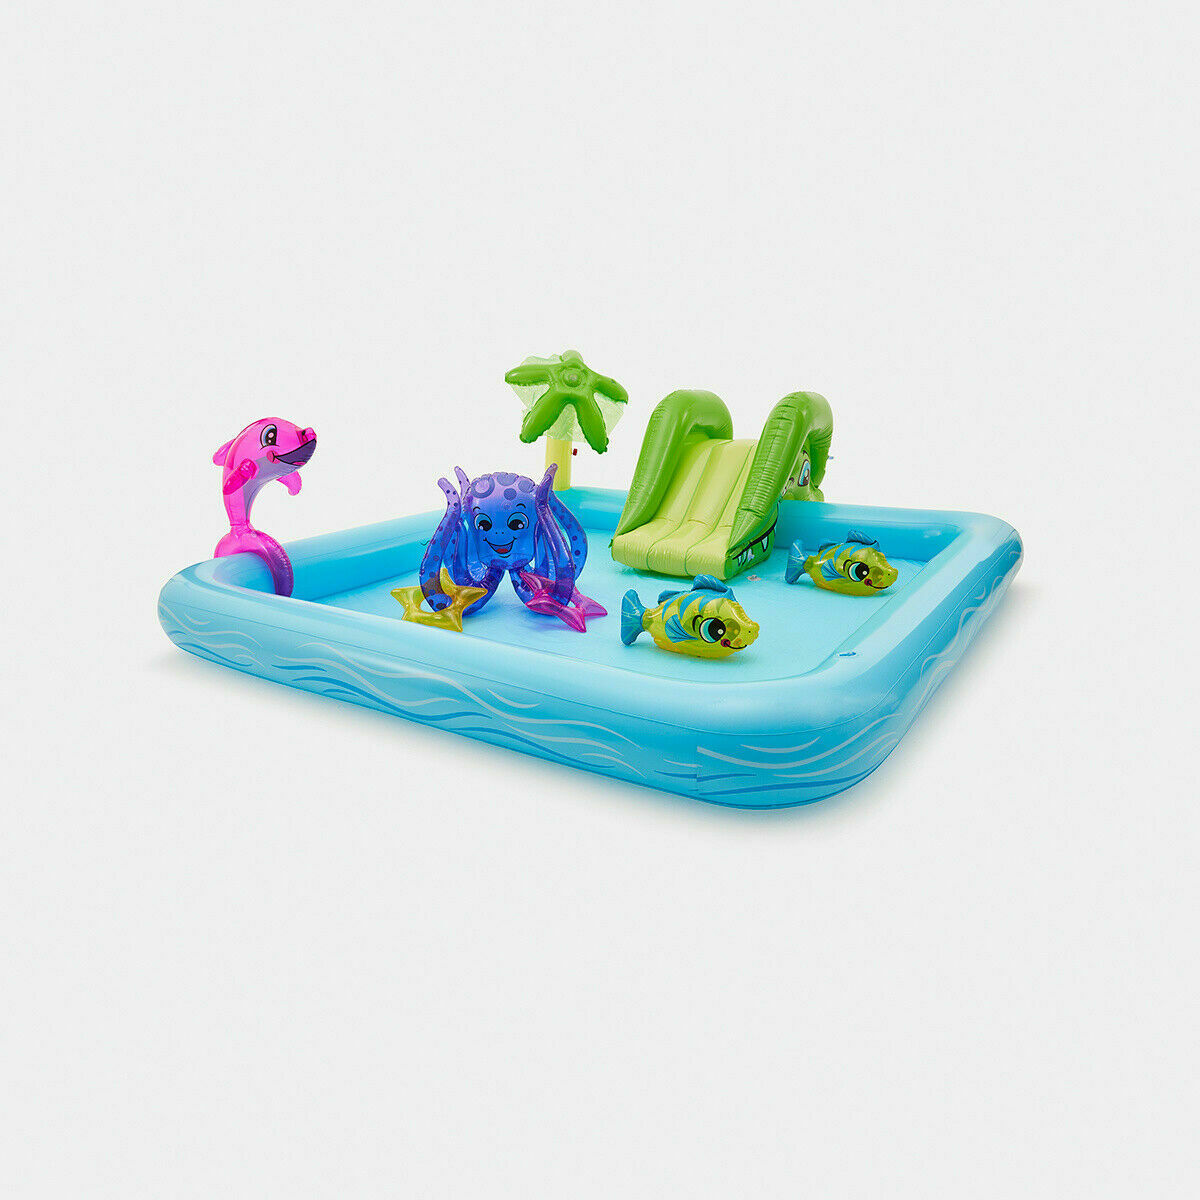 Inflatable Aquarium Play Pool Add A Splash Of Aquatic-Themed Fun To your Little